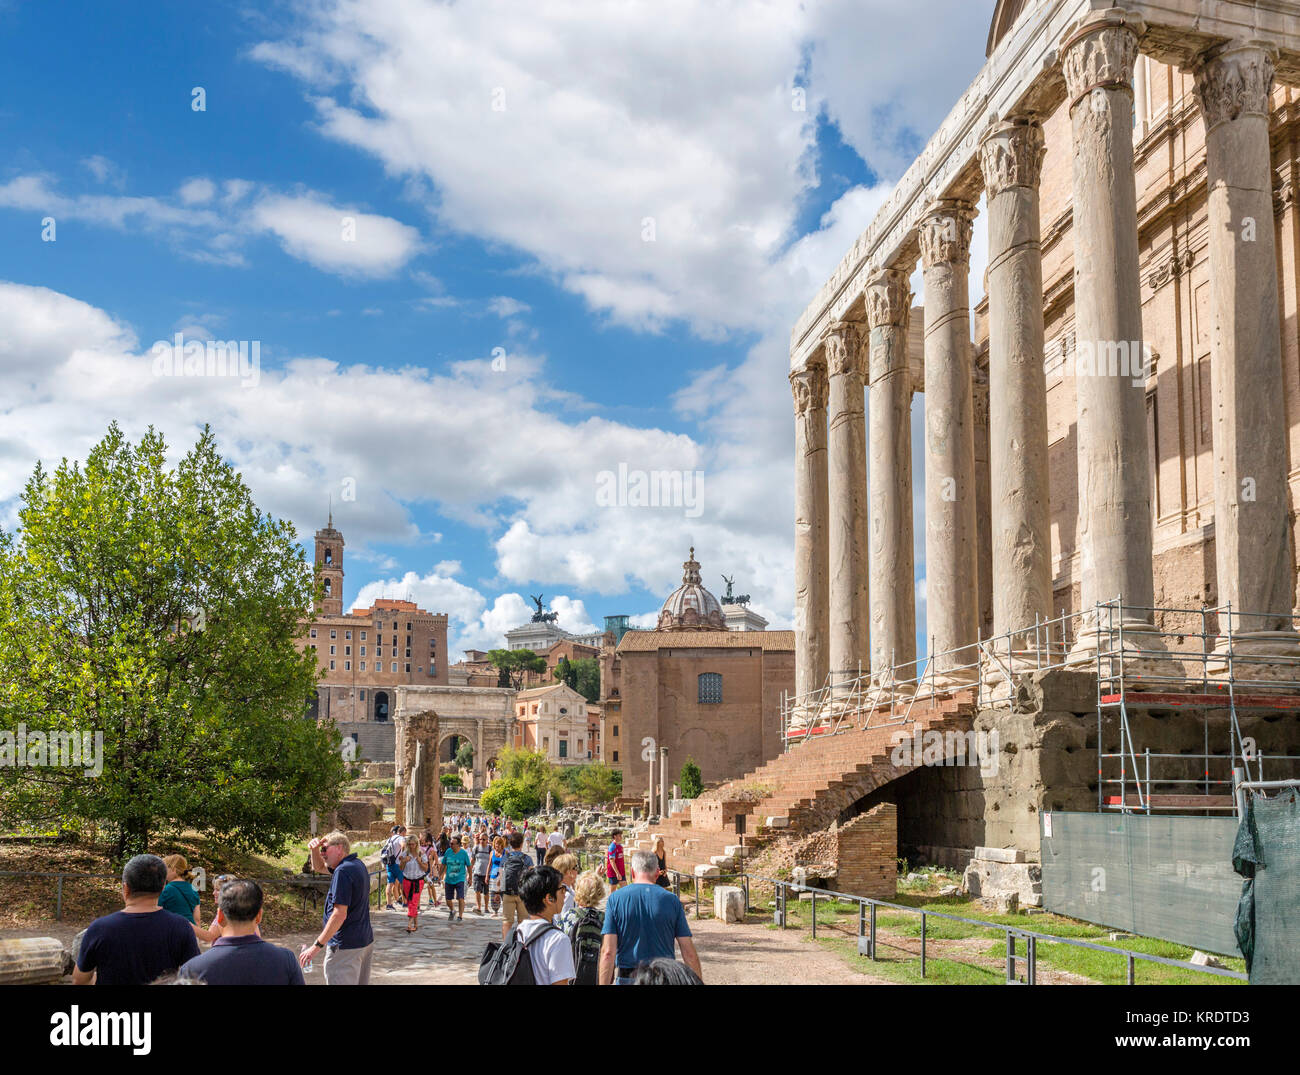 Rome, Forum. The Via Sacra with the Temple of Antoninus and Faustina to the right, Roman Forum (Foro Romano), Ancient - Stock Image